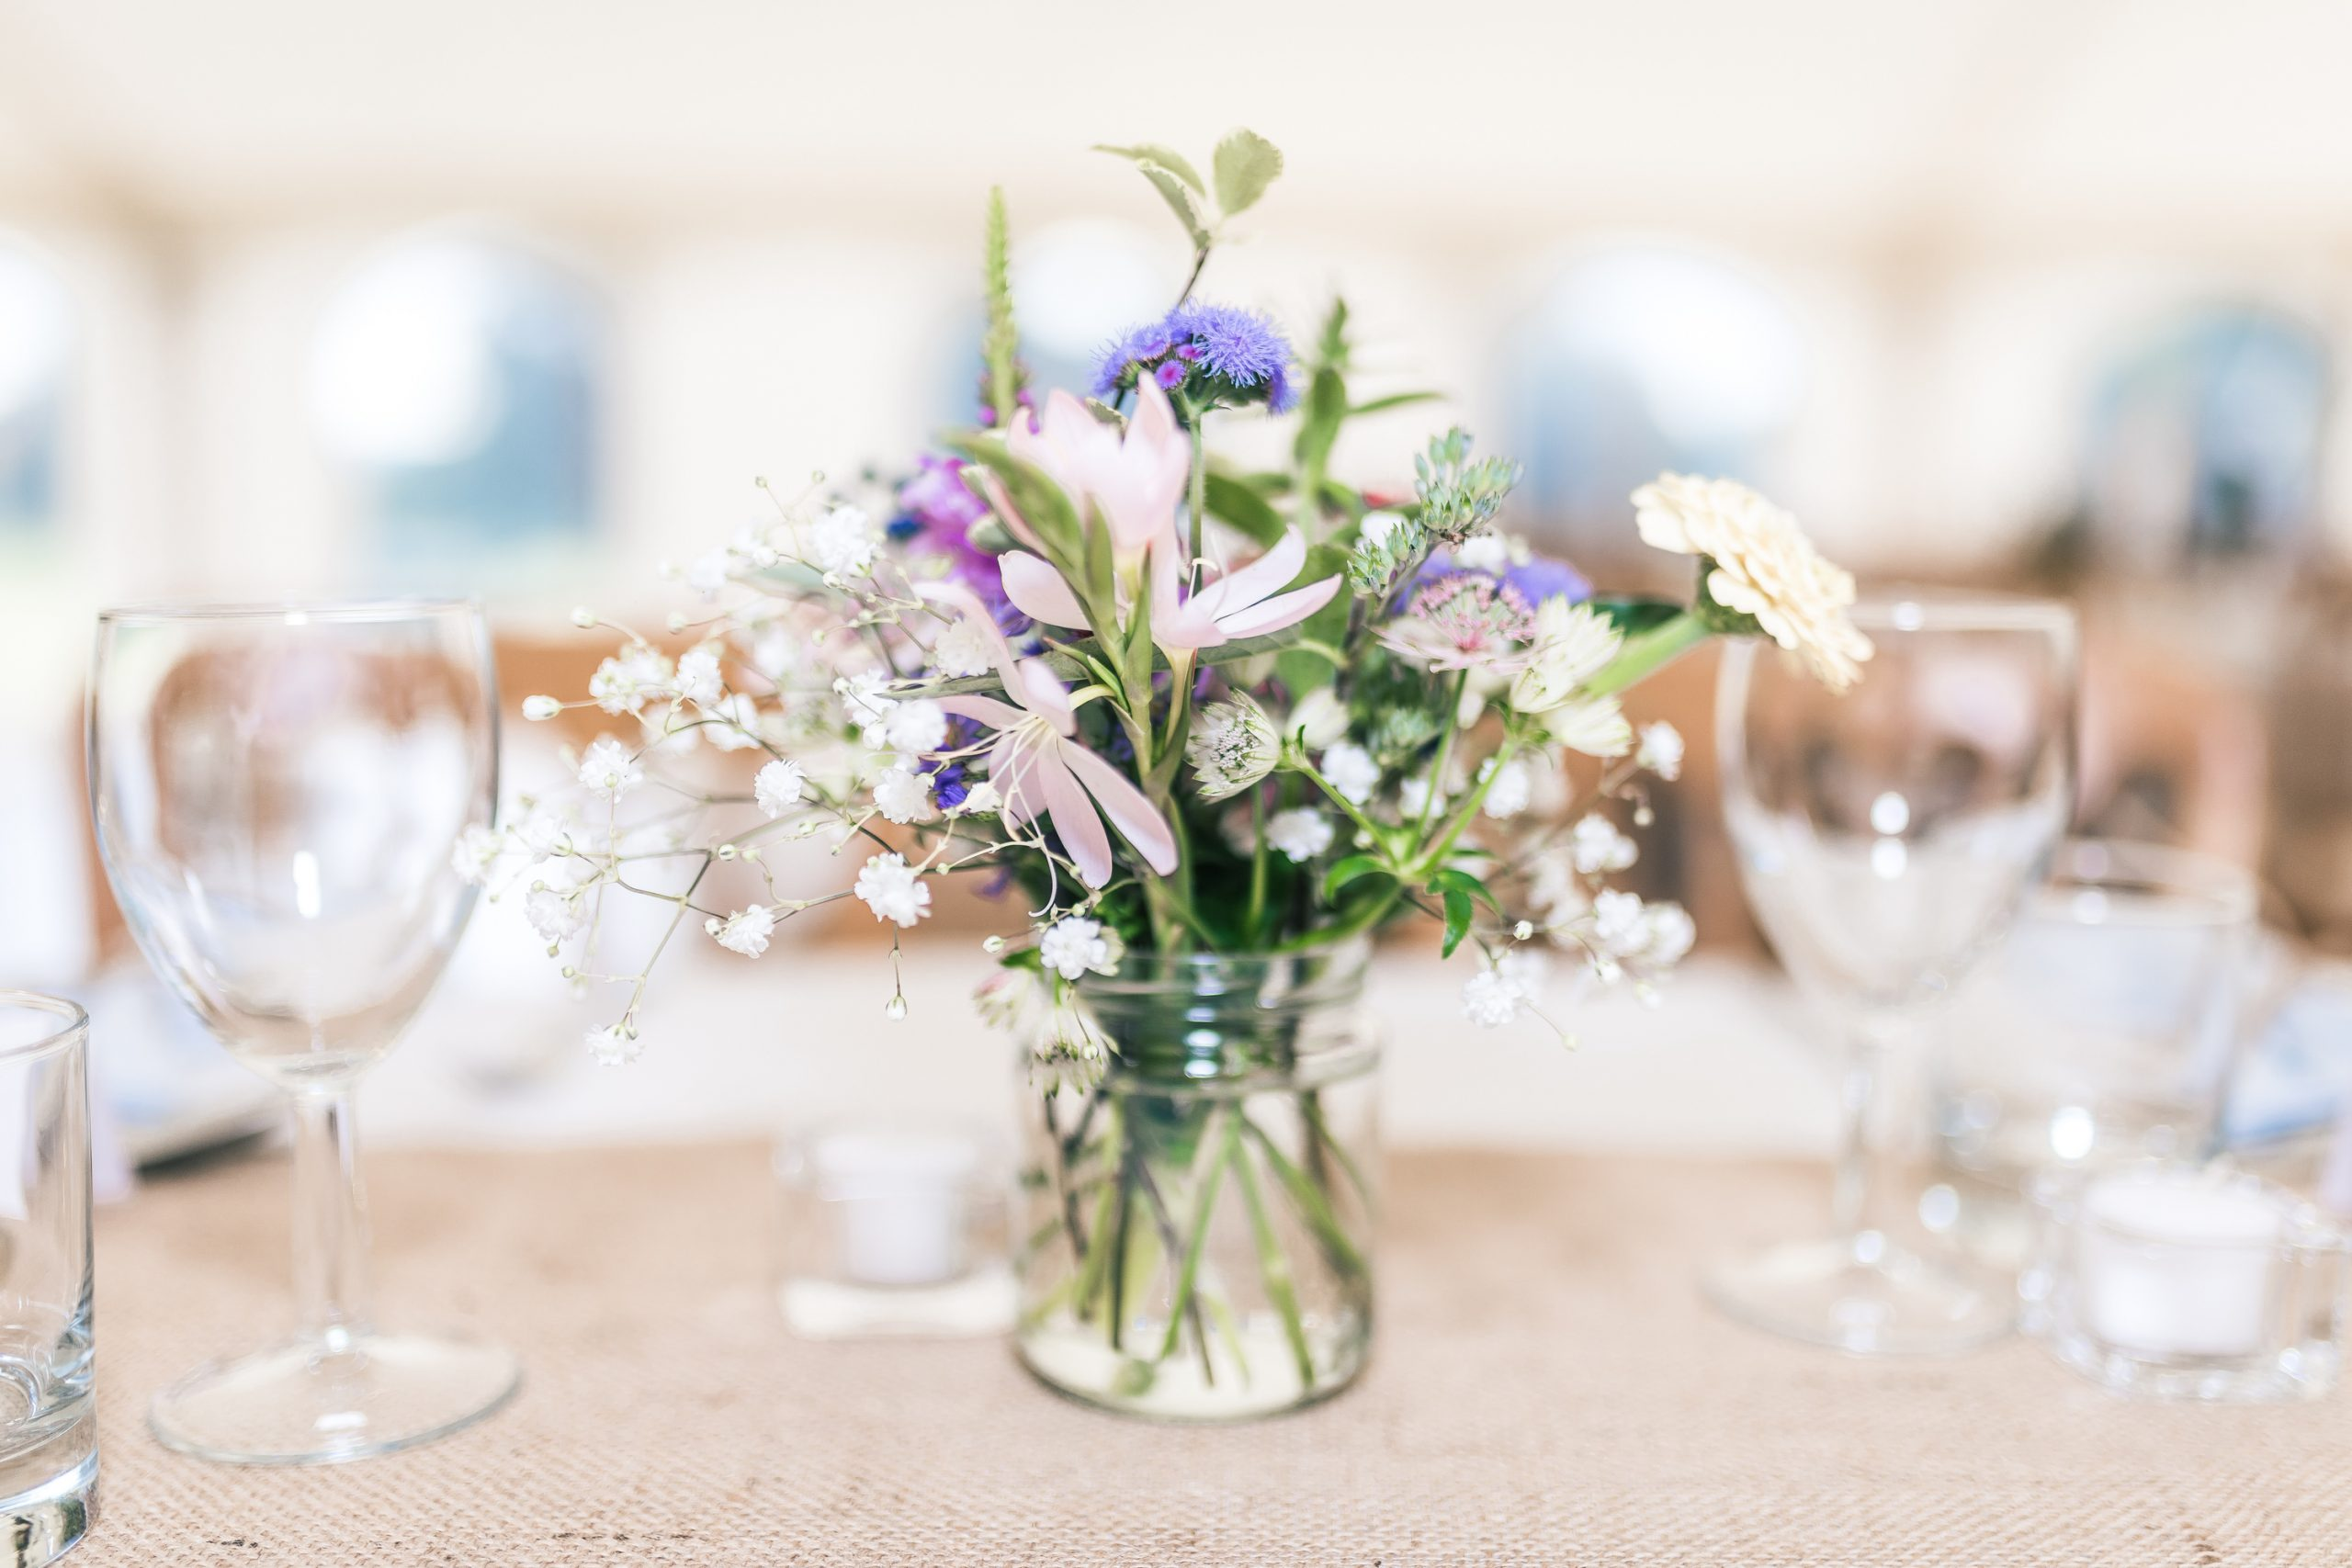 A gorgeous bouquet of delicate flowers in a mason jar makes beautiful simple centerpieces for any event.